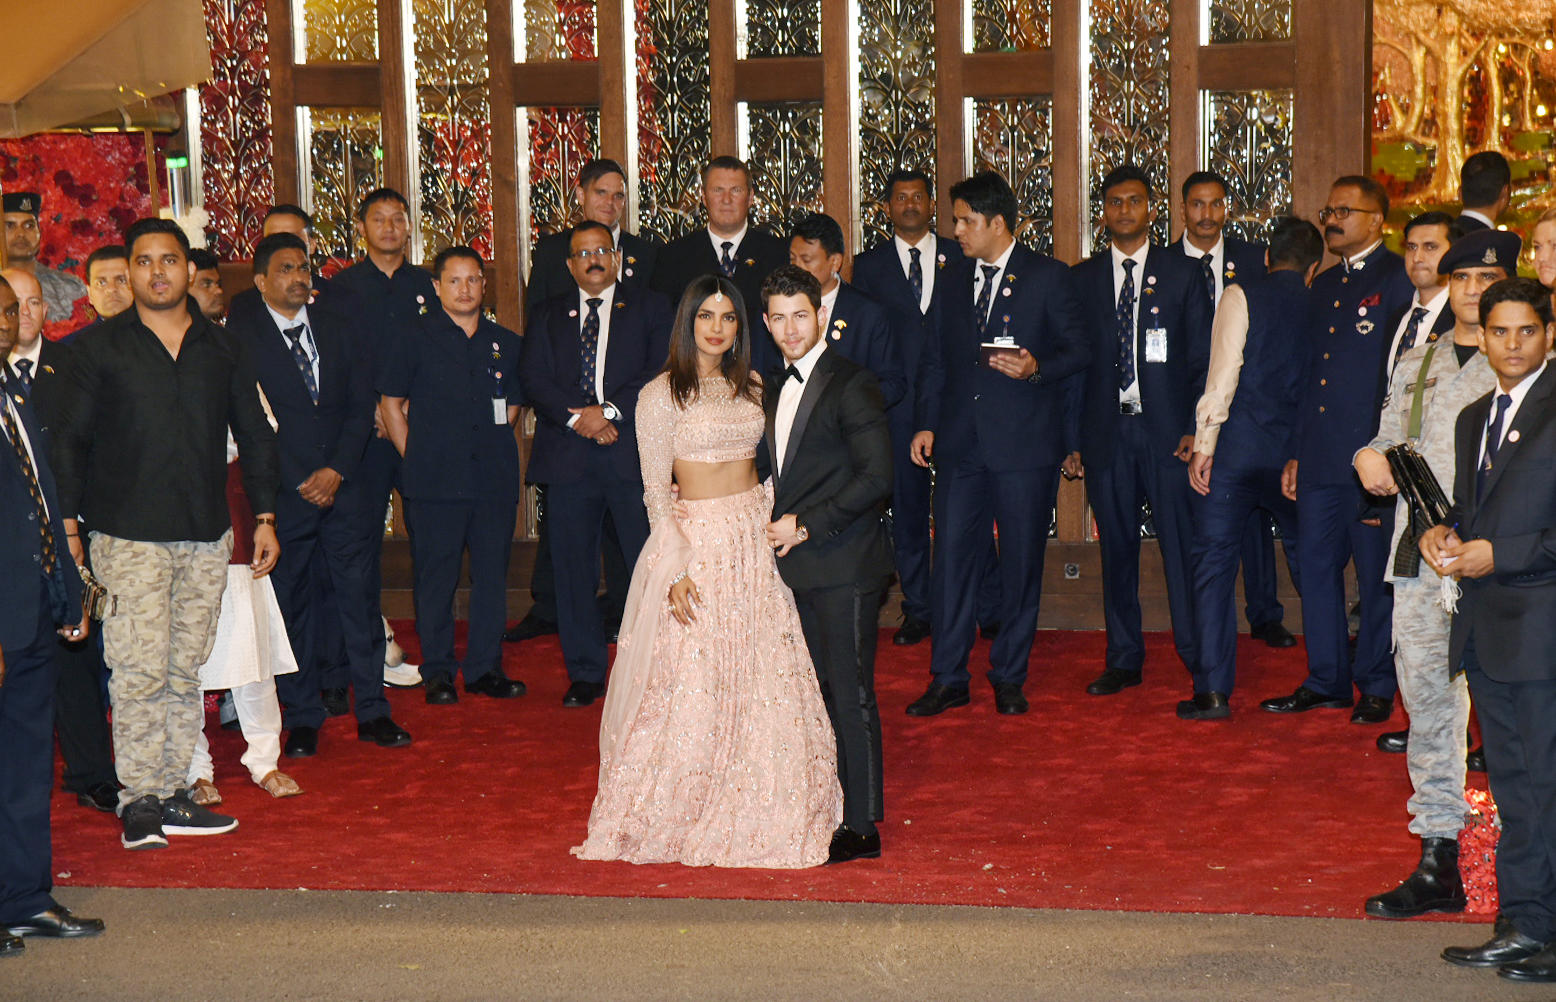 Isha Ambani and Anand Piramal wedding photos images marriage pictures videos